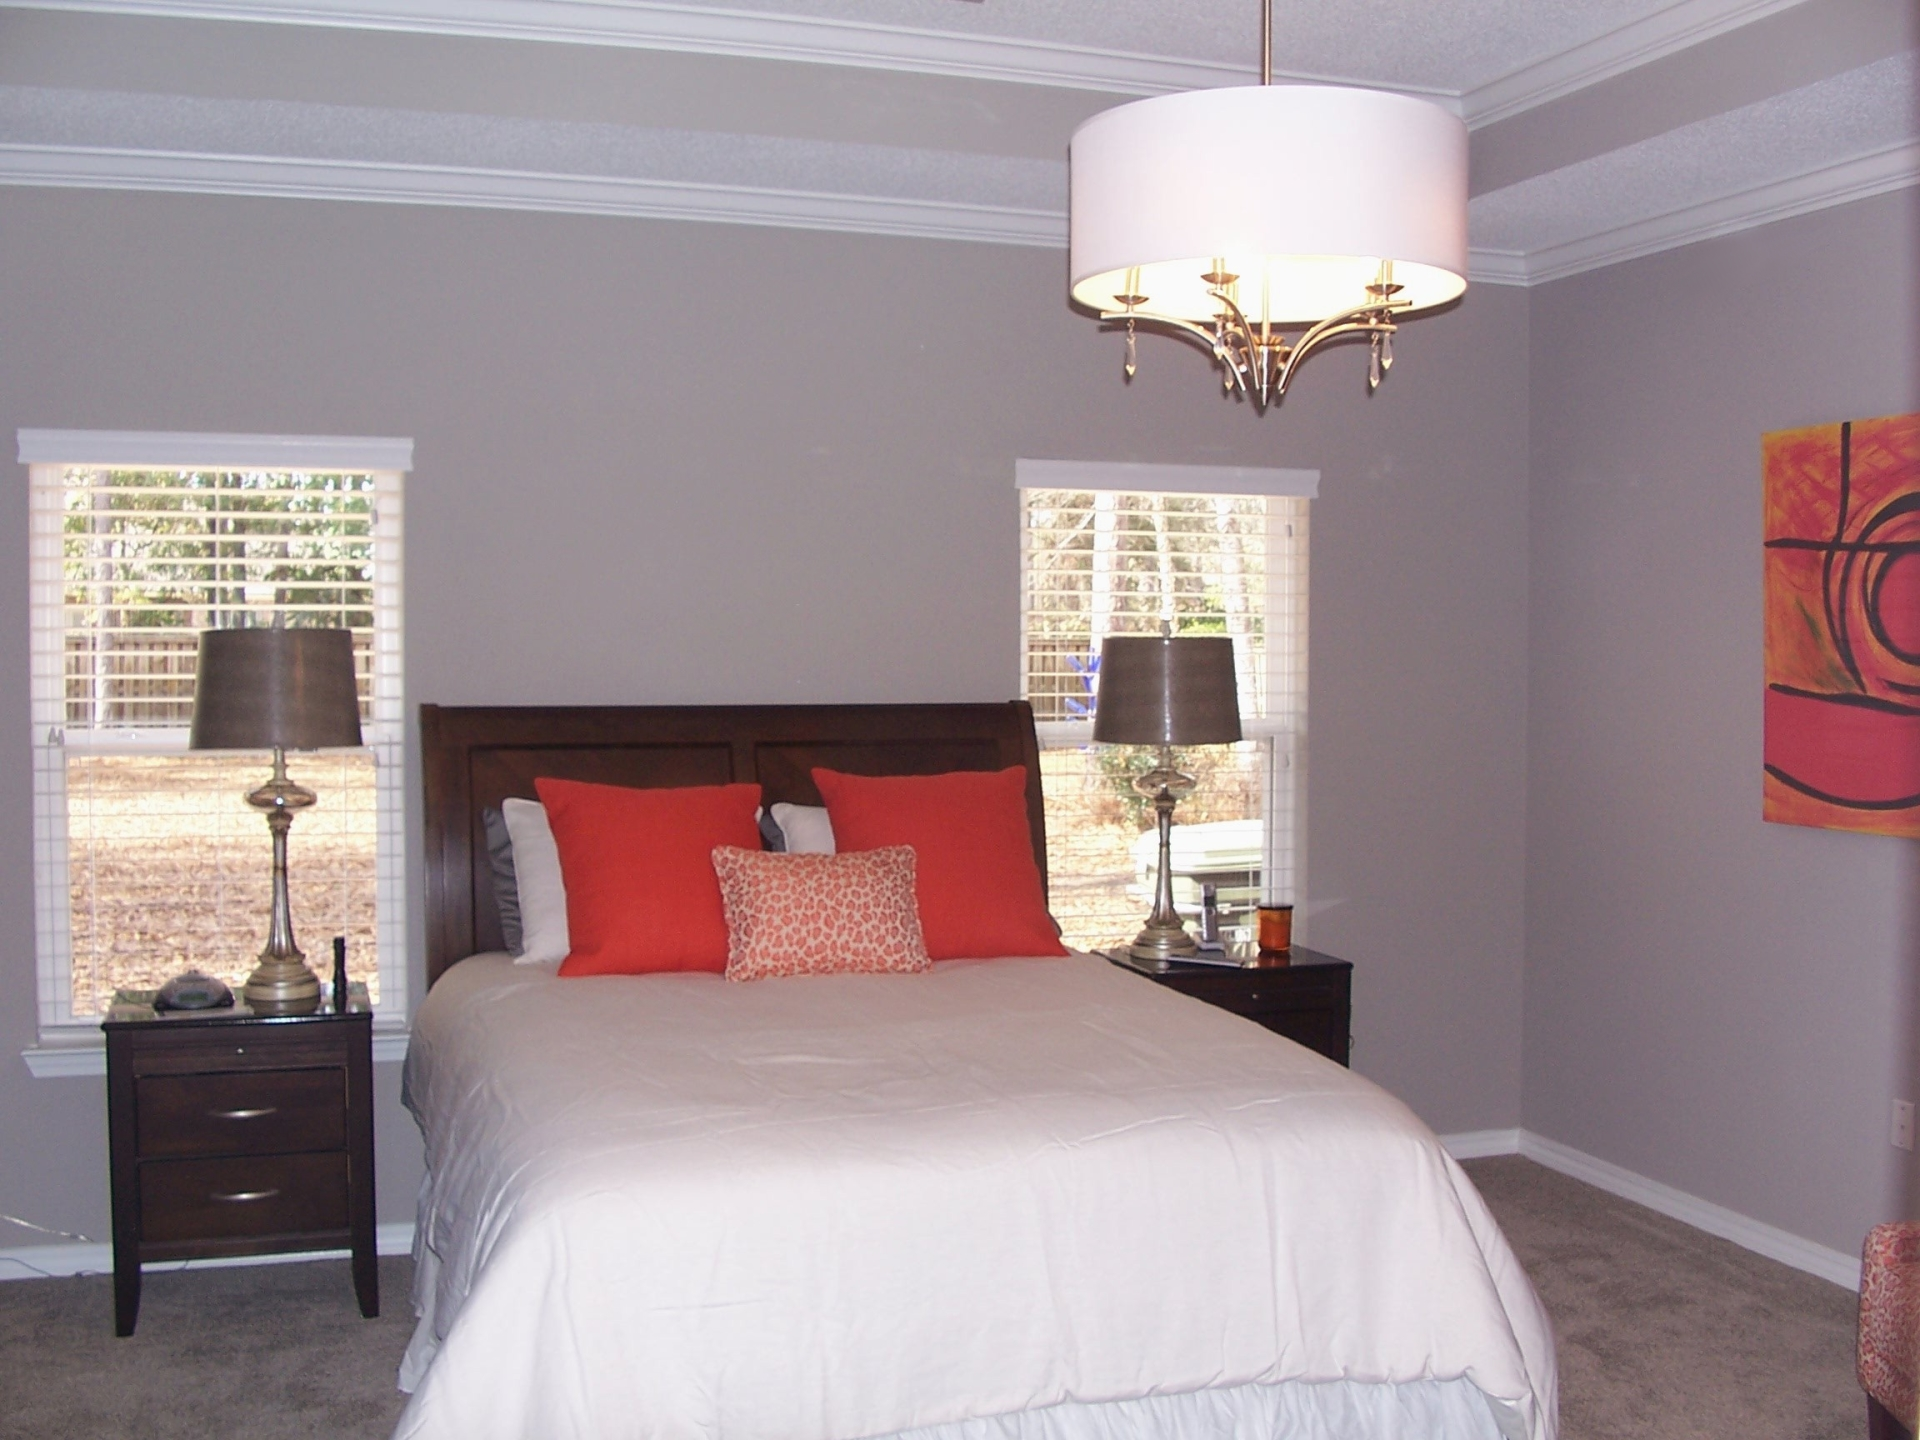 Grey walls with red accents